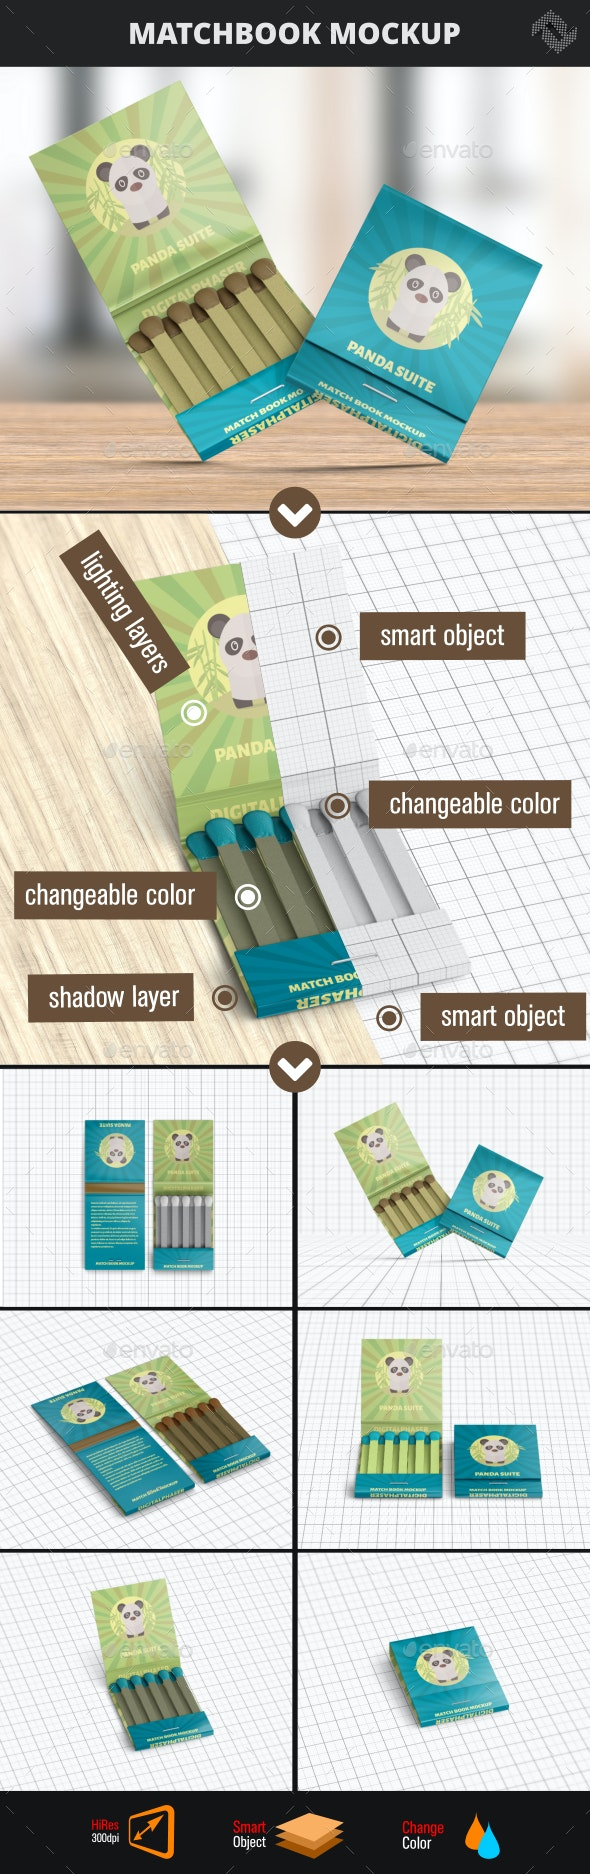 Matchbook Mockup - Product Mock-Ups Graphics